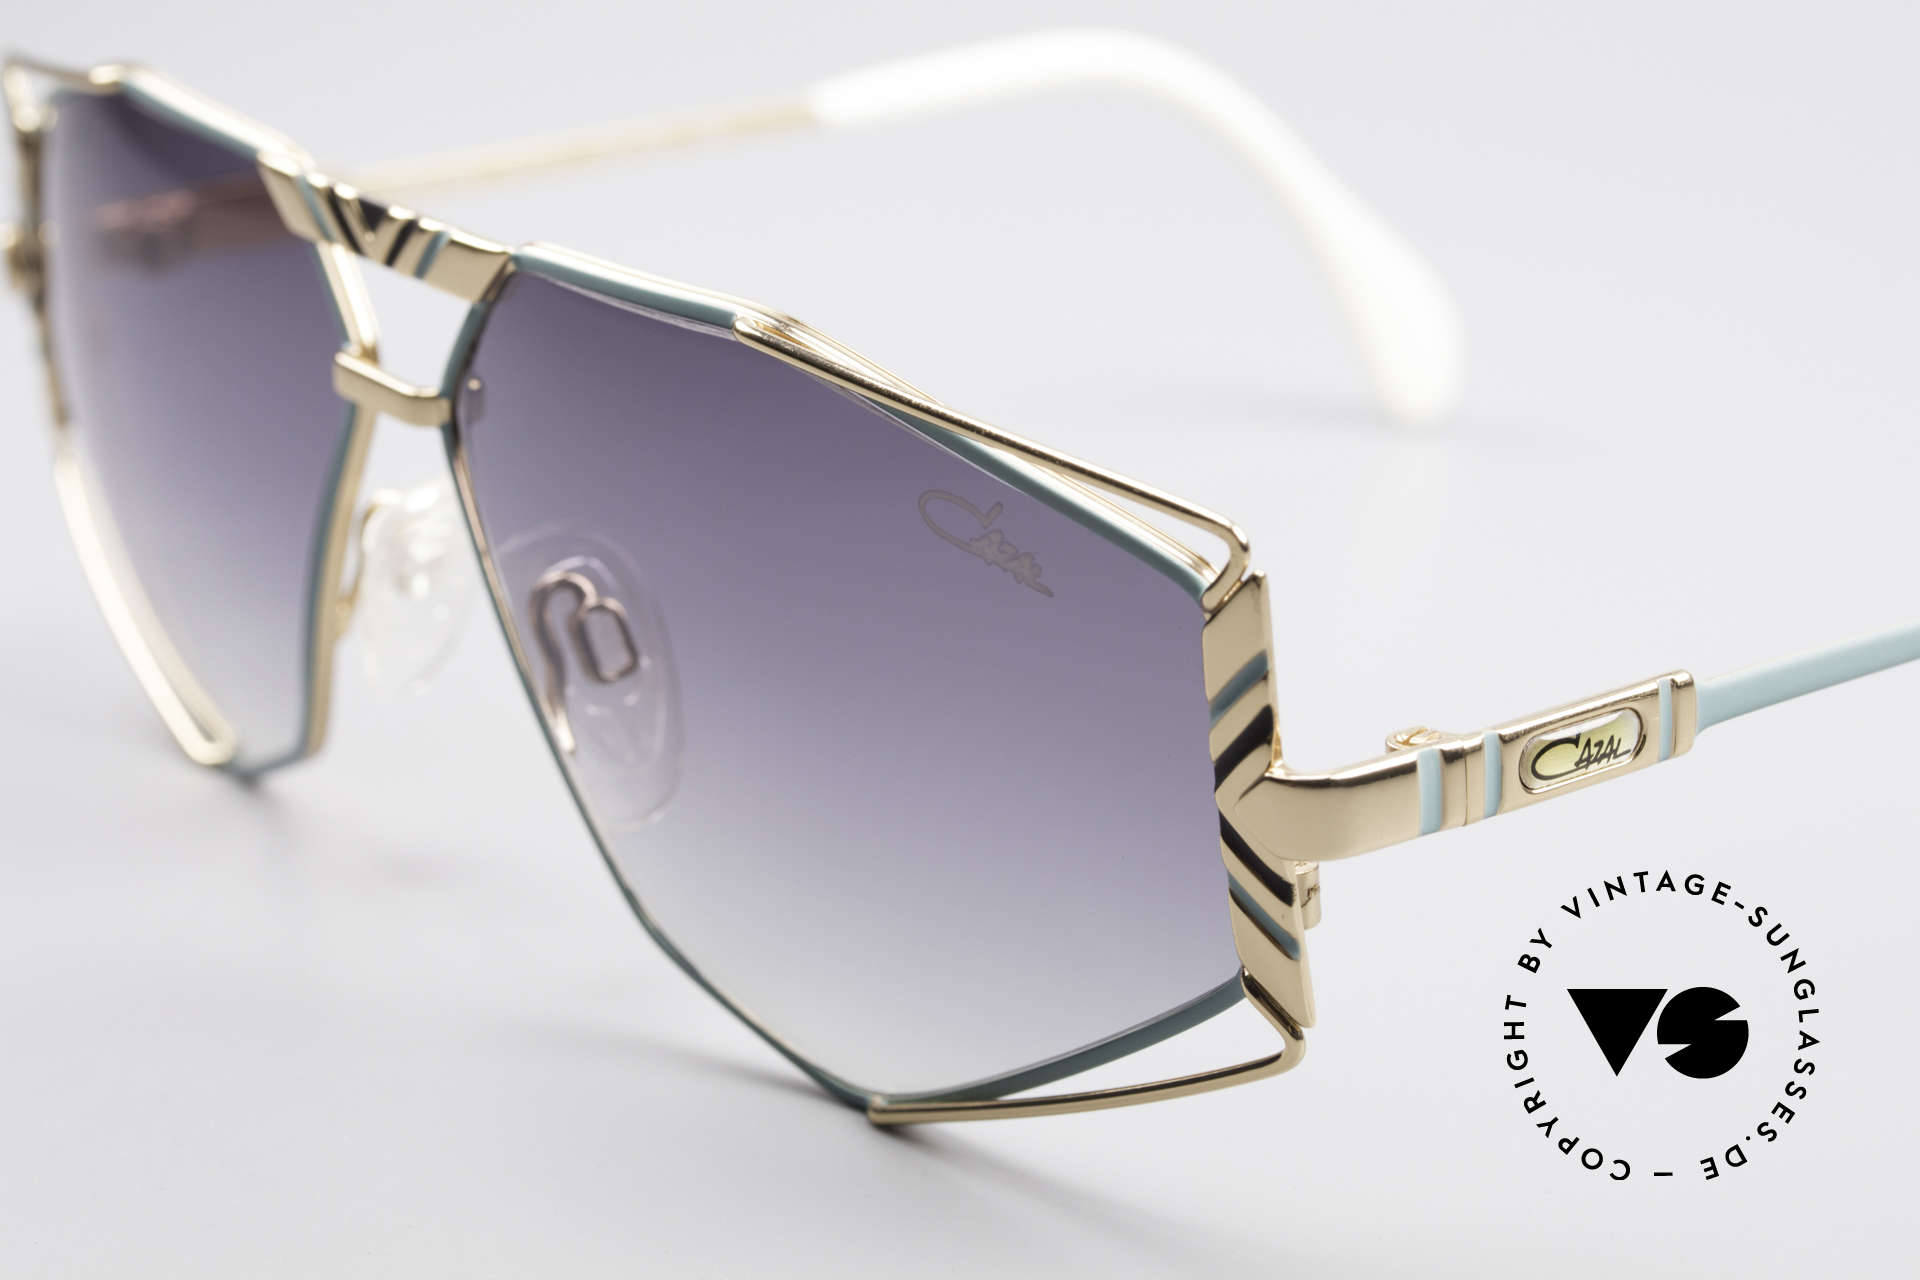 Cazal 956 Cari Zalloni Vintage Shades, new old stock (like all our vintage Cazal sunnies), Made for Men and Women